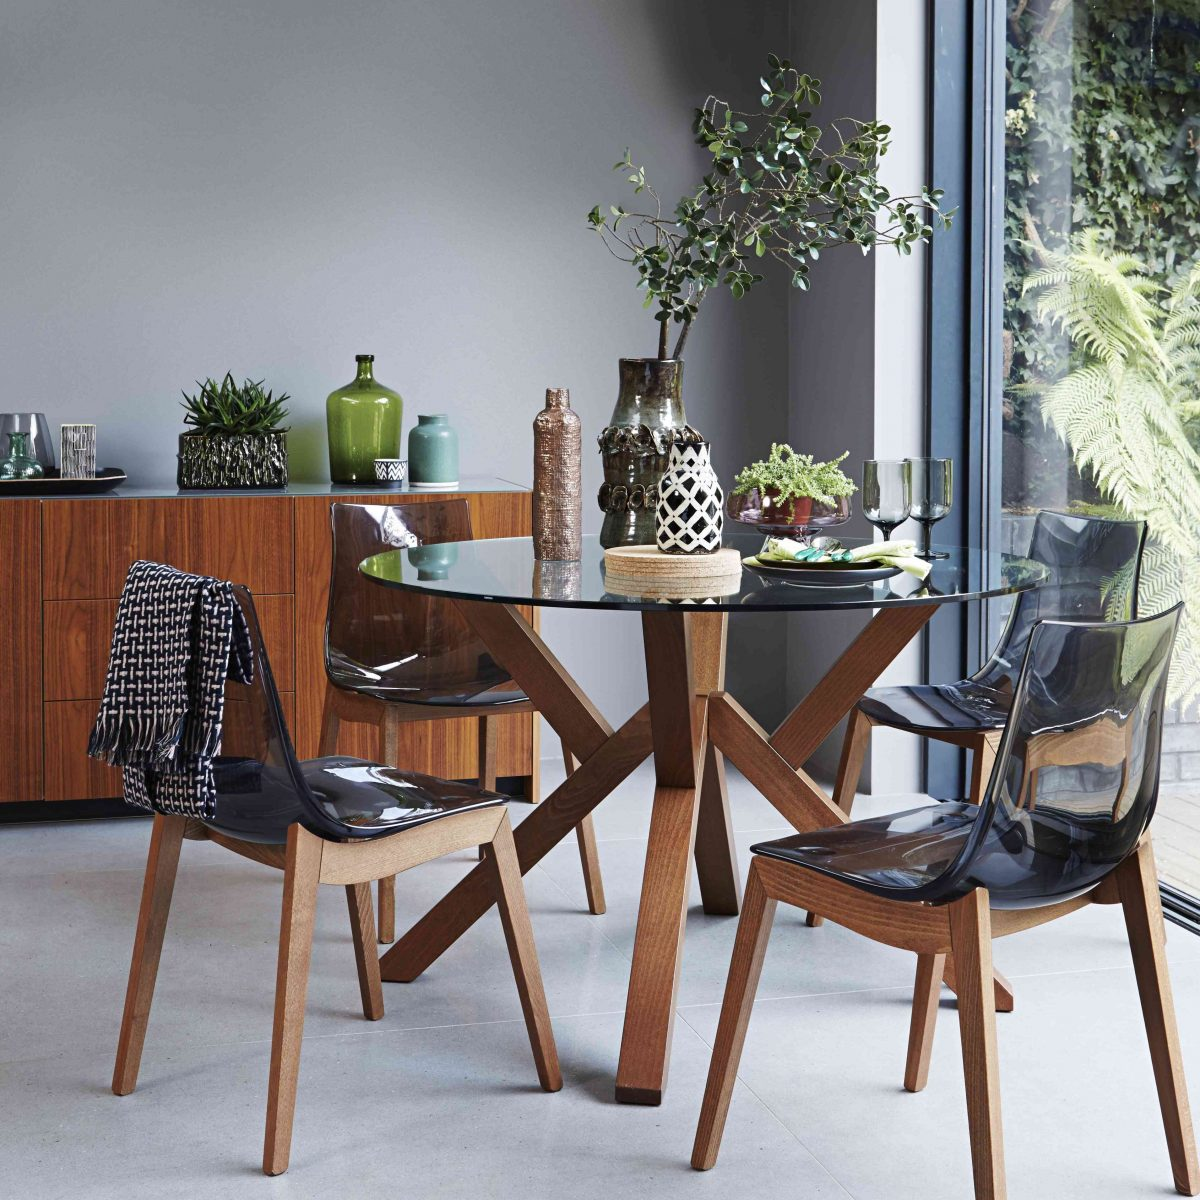 How To Obtain The Furniture Village Natural Woodland Style Within Your Home